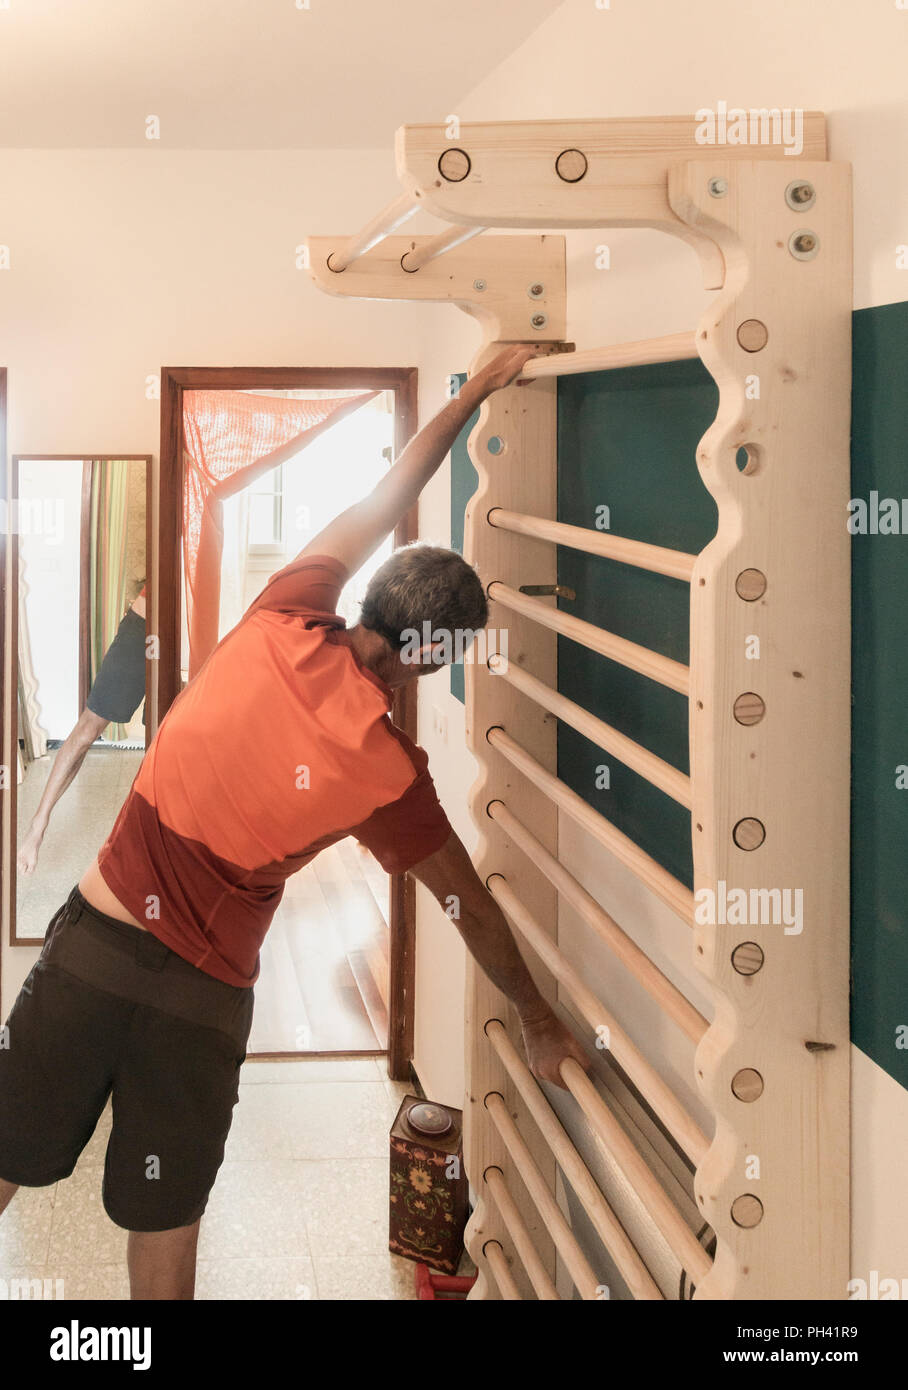 Mature man exercising at home on homemade wall bars in small